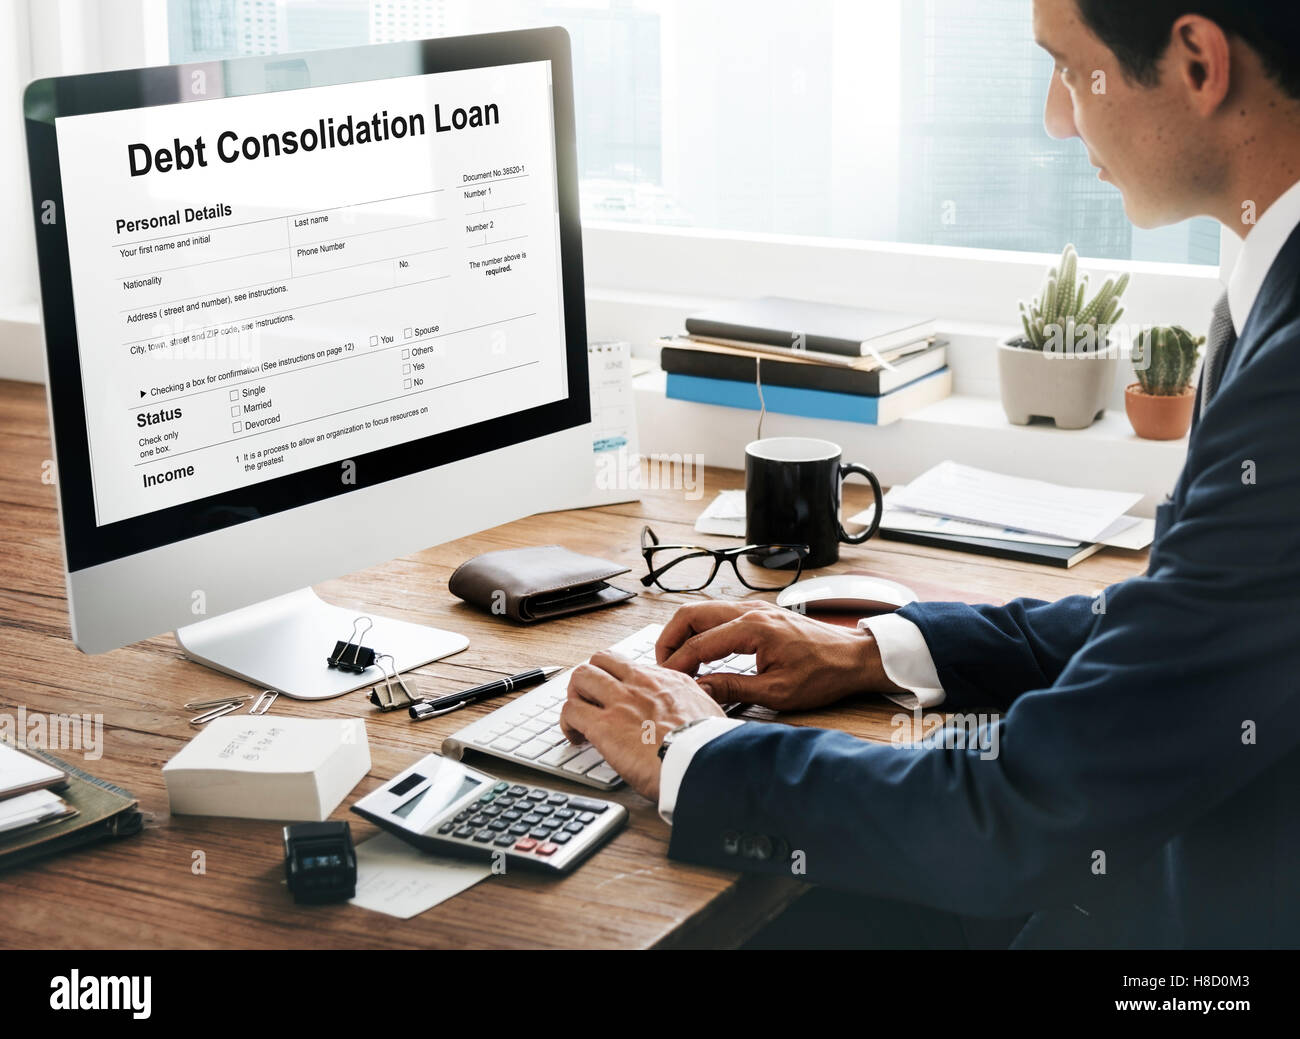 Debt Consolidation Loan Financial Concept - Stock Image